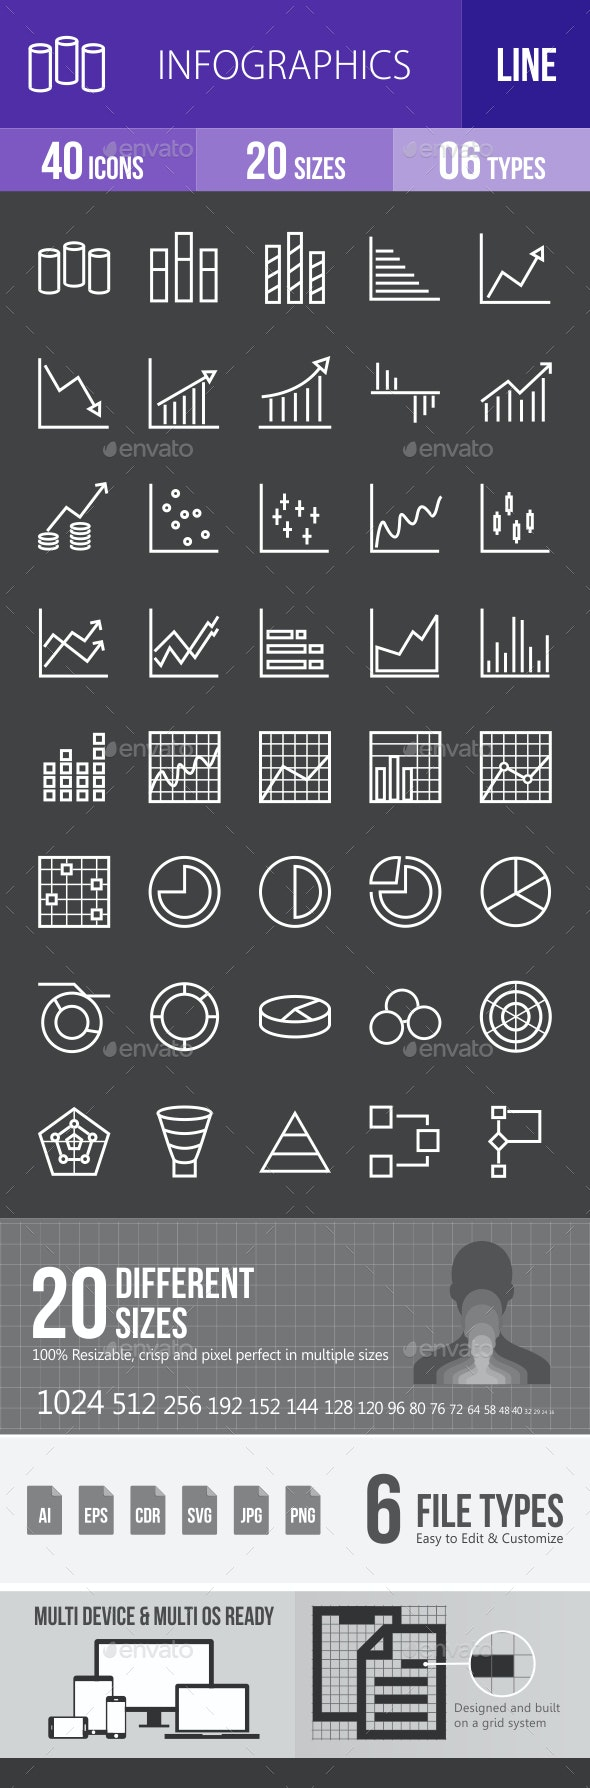 Infographics Line Inverted Icons - Icons